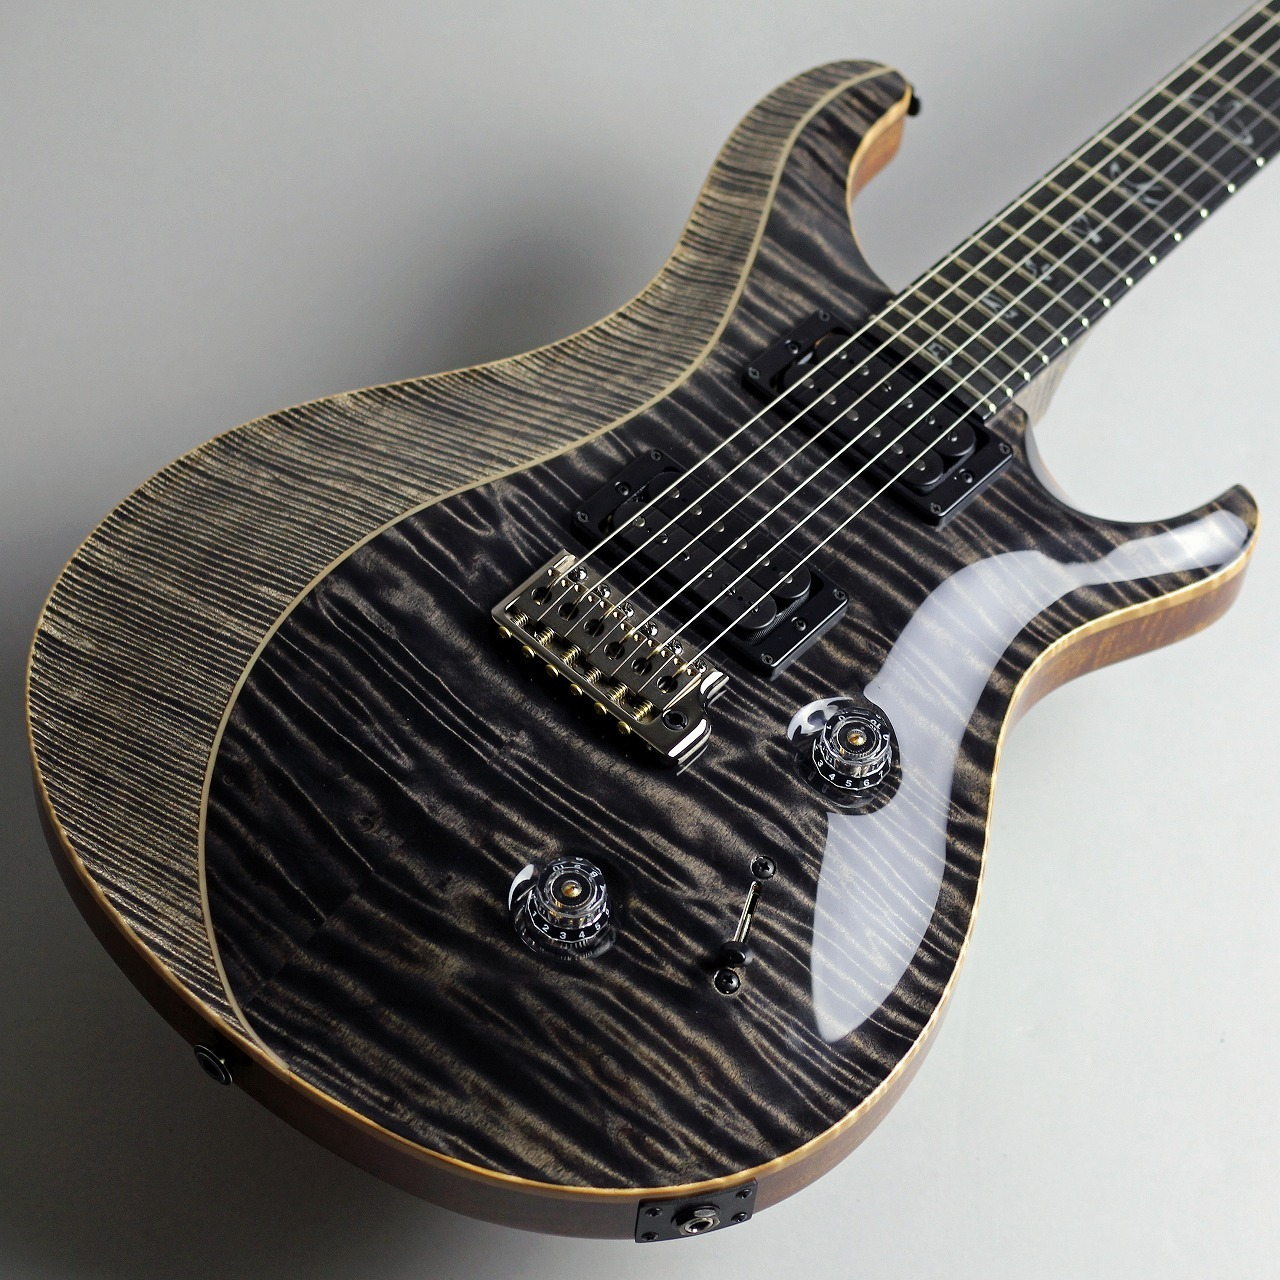 Private Stock #7660 Custom24 Quilted and Curly Maple Top w/ Luminlays Purfling【プレイ動画有り】のケース・その他画像